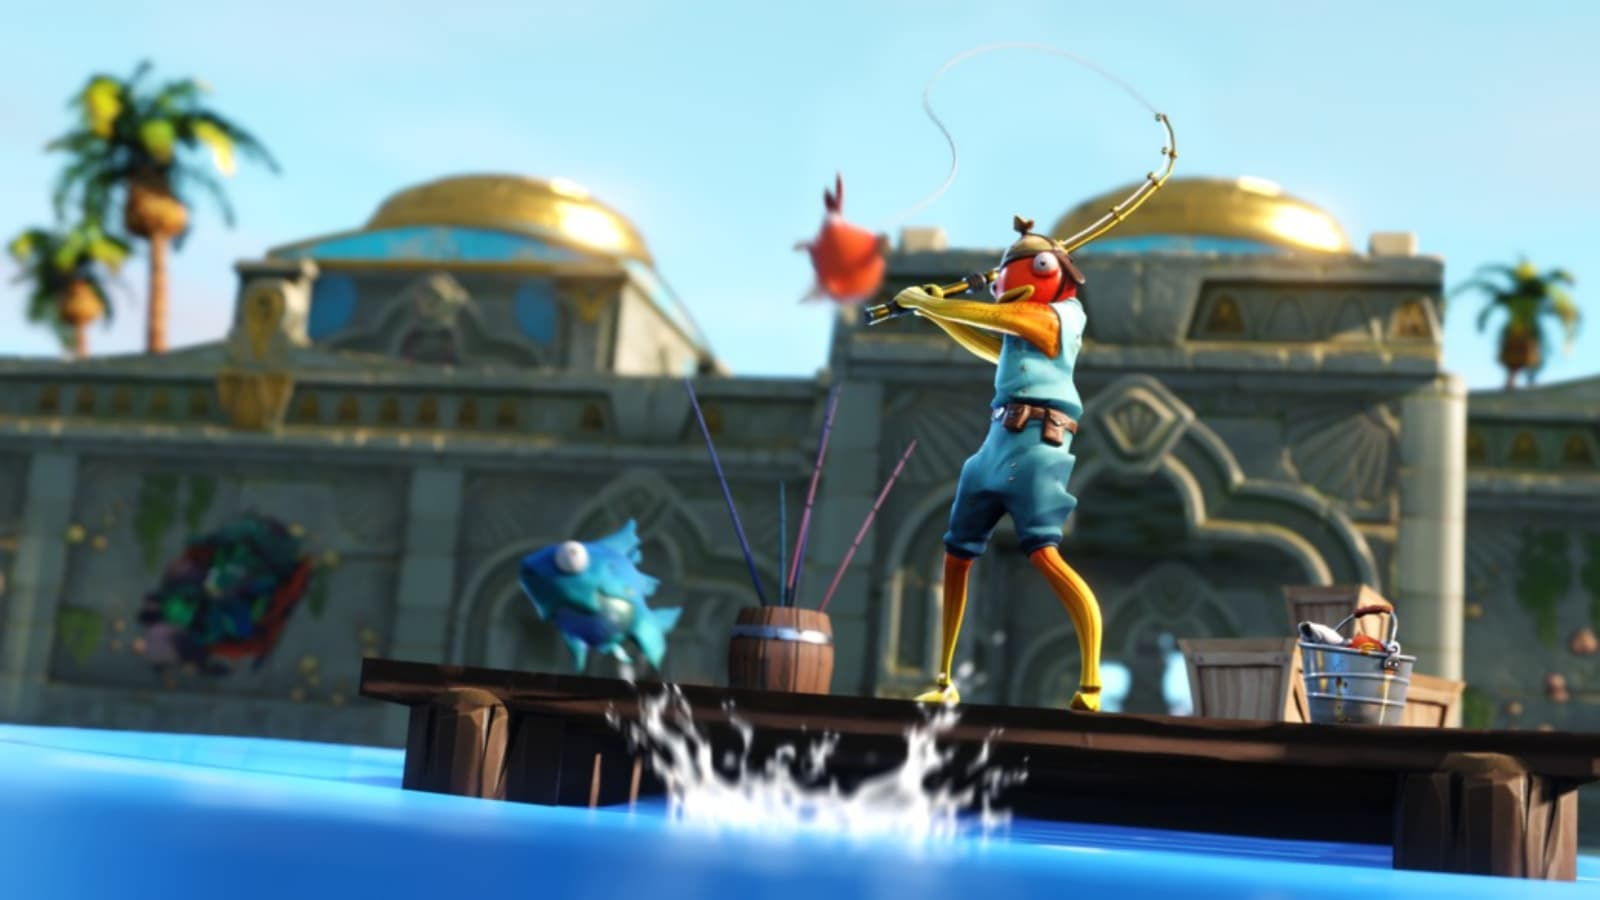 Fortnite Fishtopia Fish Tycoon: New Creative Map Code and All About it